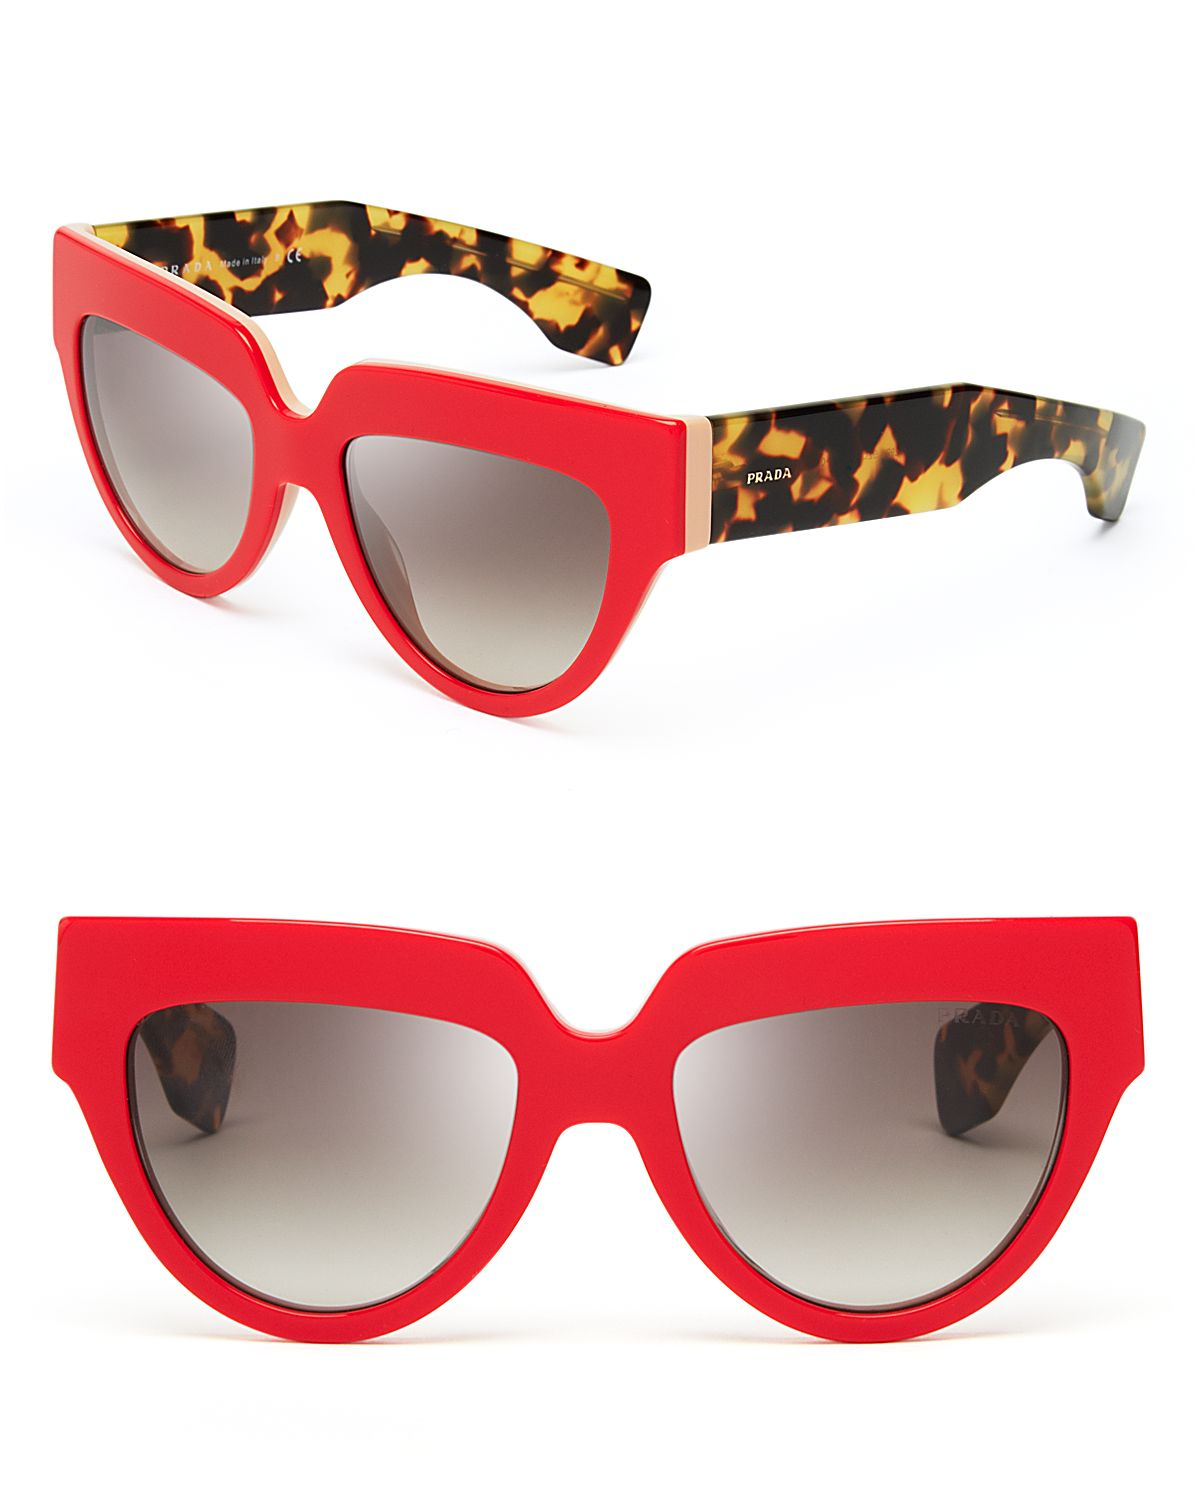 bdd01d8614 ... promo code for lyst prada two tone cat eye sunglasses in red aa694 14fb2